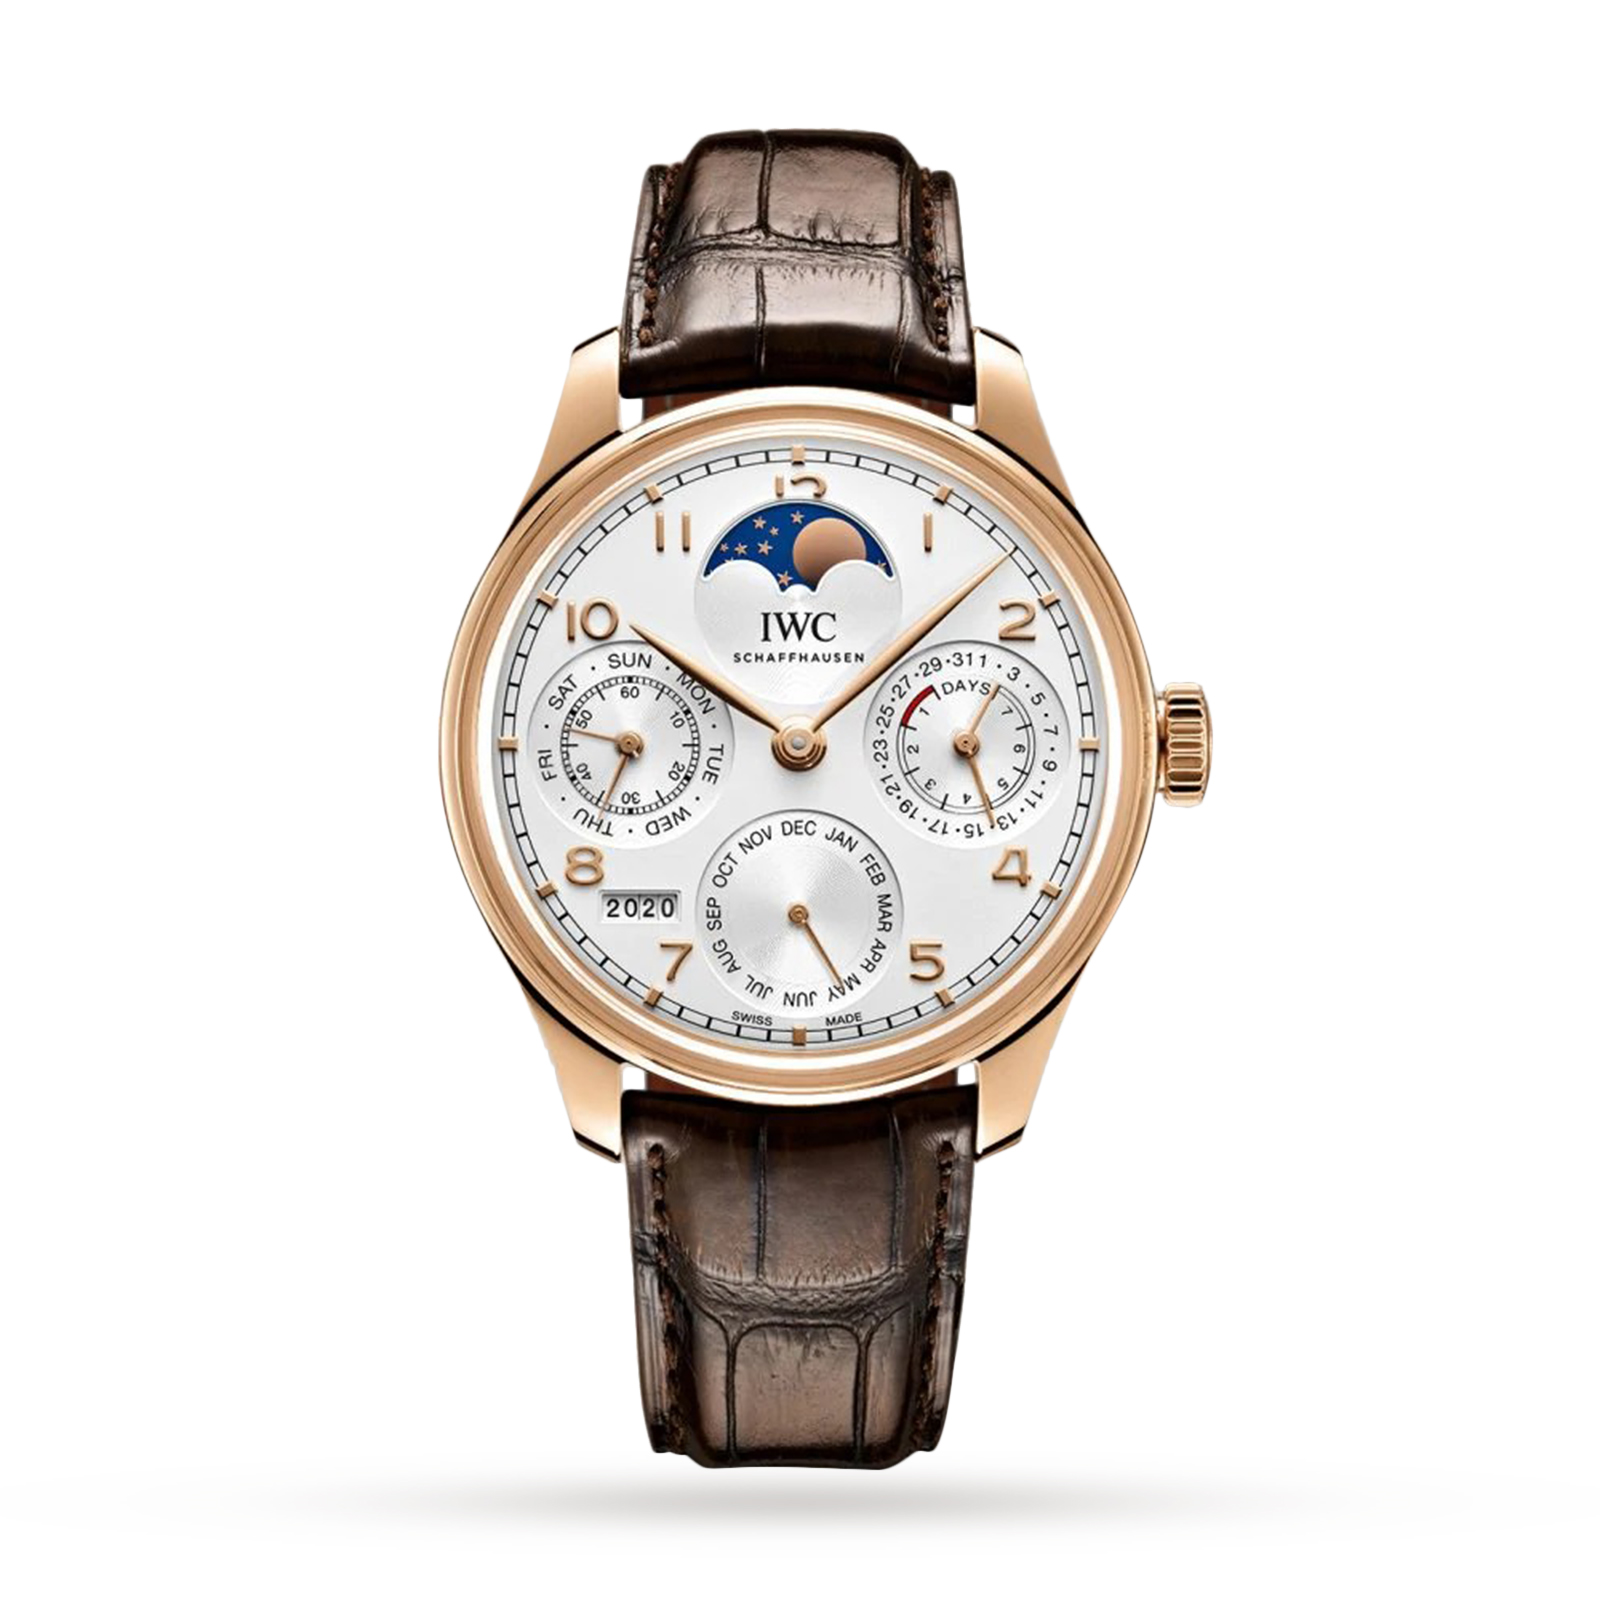 maison montre manual watches chronograph in calendar en rose perpetual complications patek philippe watch grand de or greef gold